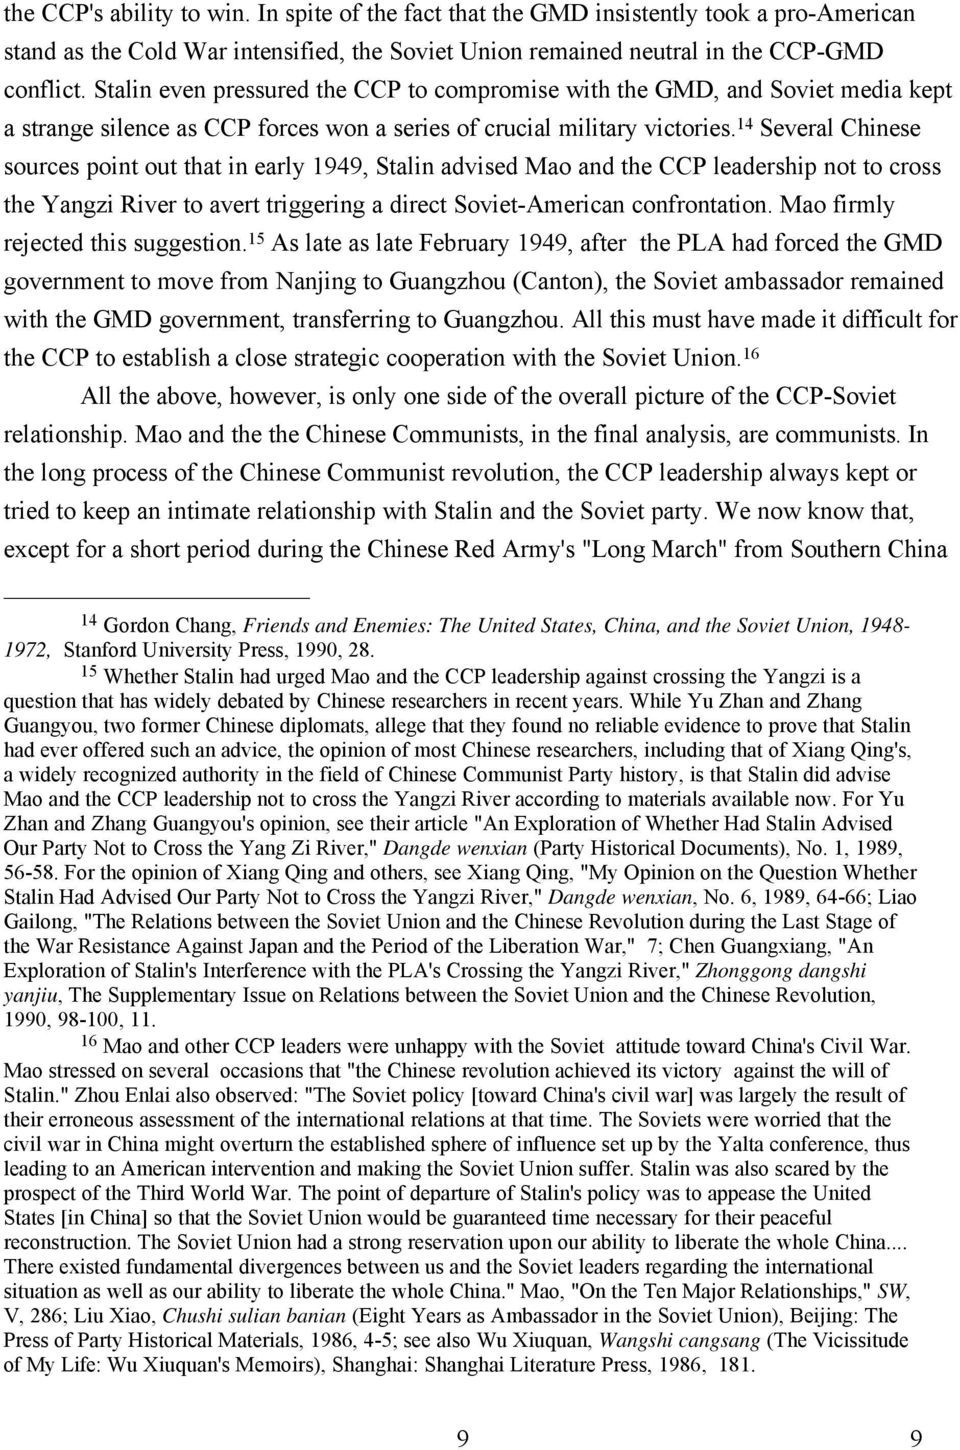 14 Several Chinese sources point out that in early 1949, Stalin advised Mao and the CCP leadership not to cross the Yangzi River to avert triggering a direct Soviet-American confrontation.